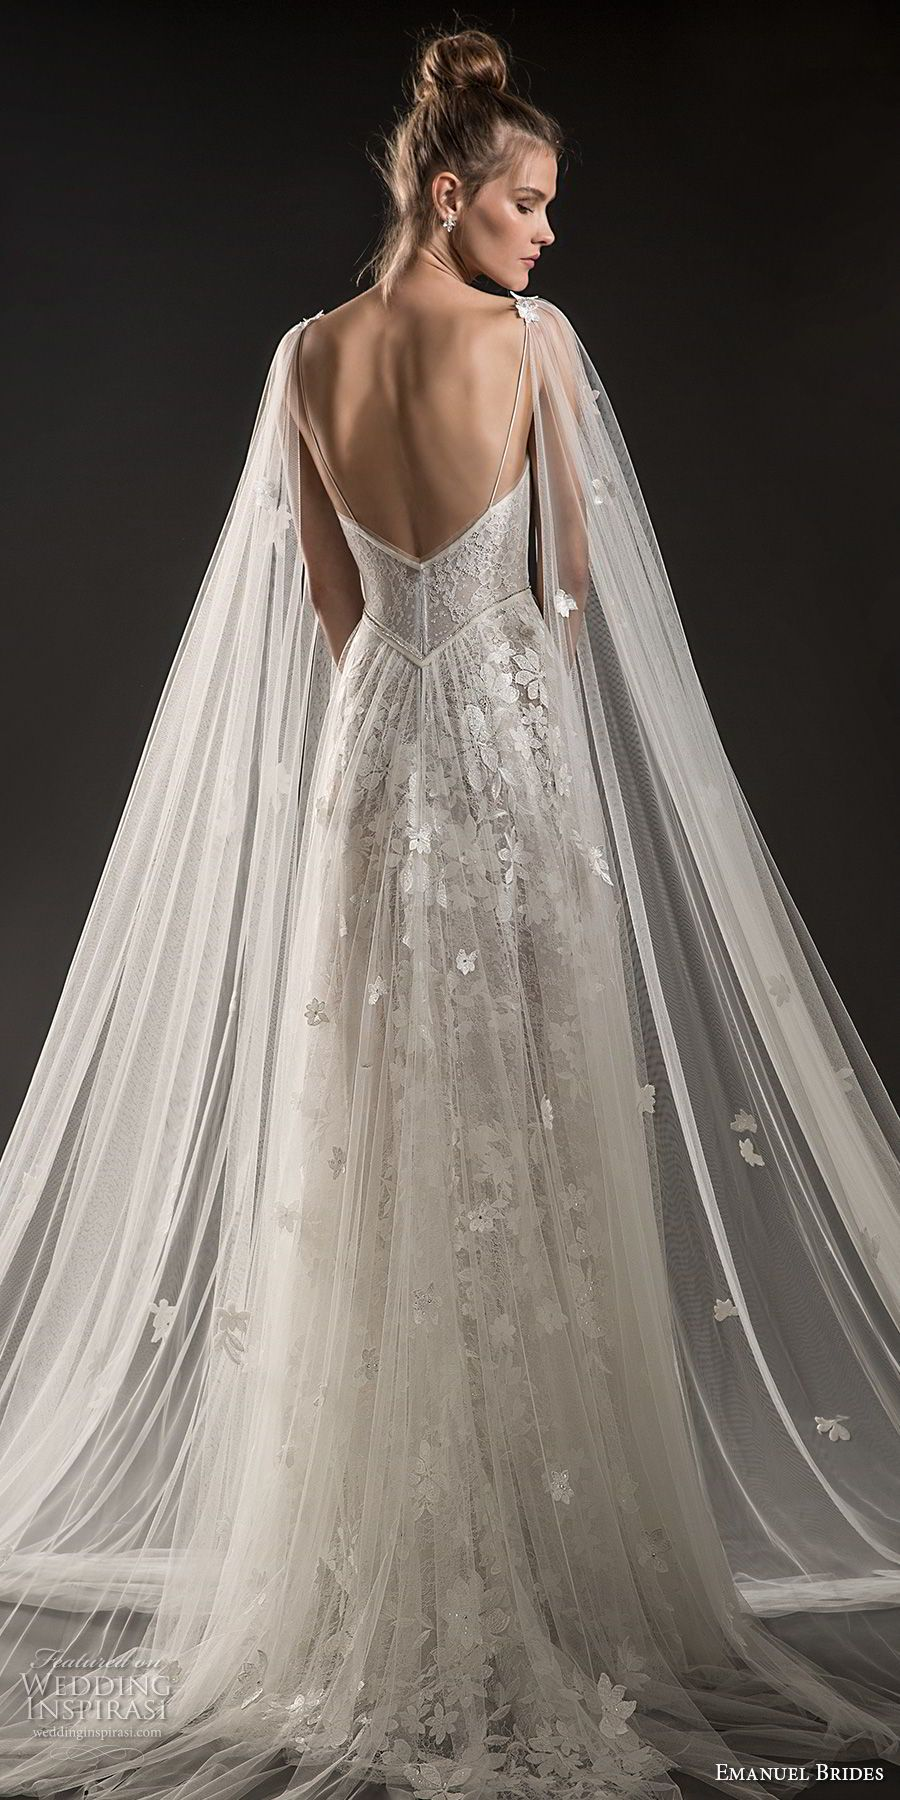 0e239a71136 Emanuel Brides 2018 Wedding Dresses | F - Gowns | Νυφικά ...